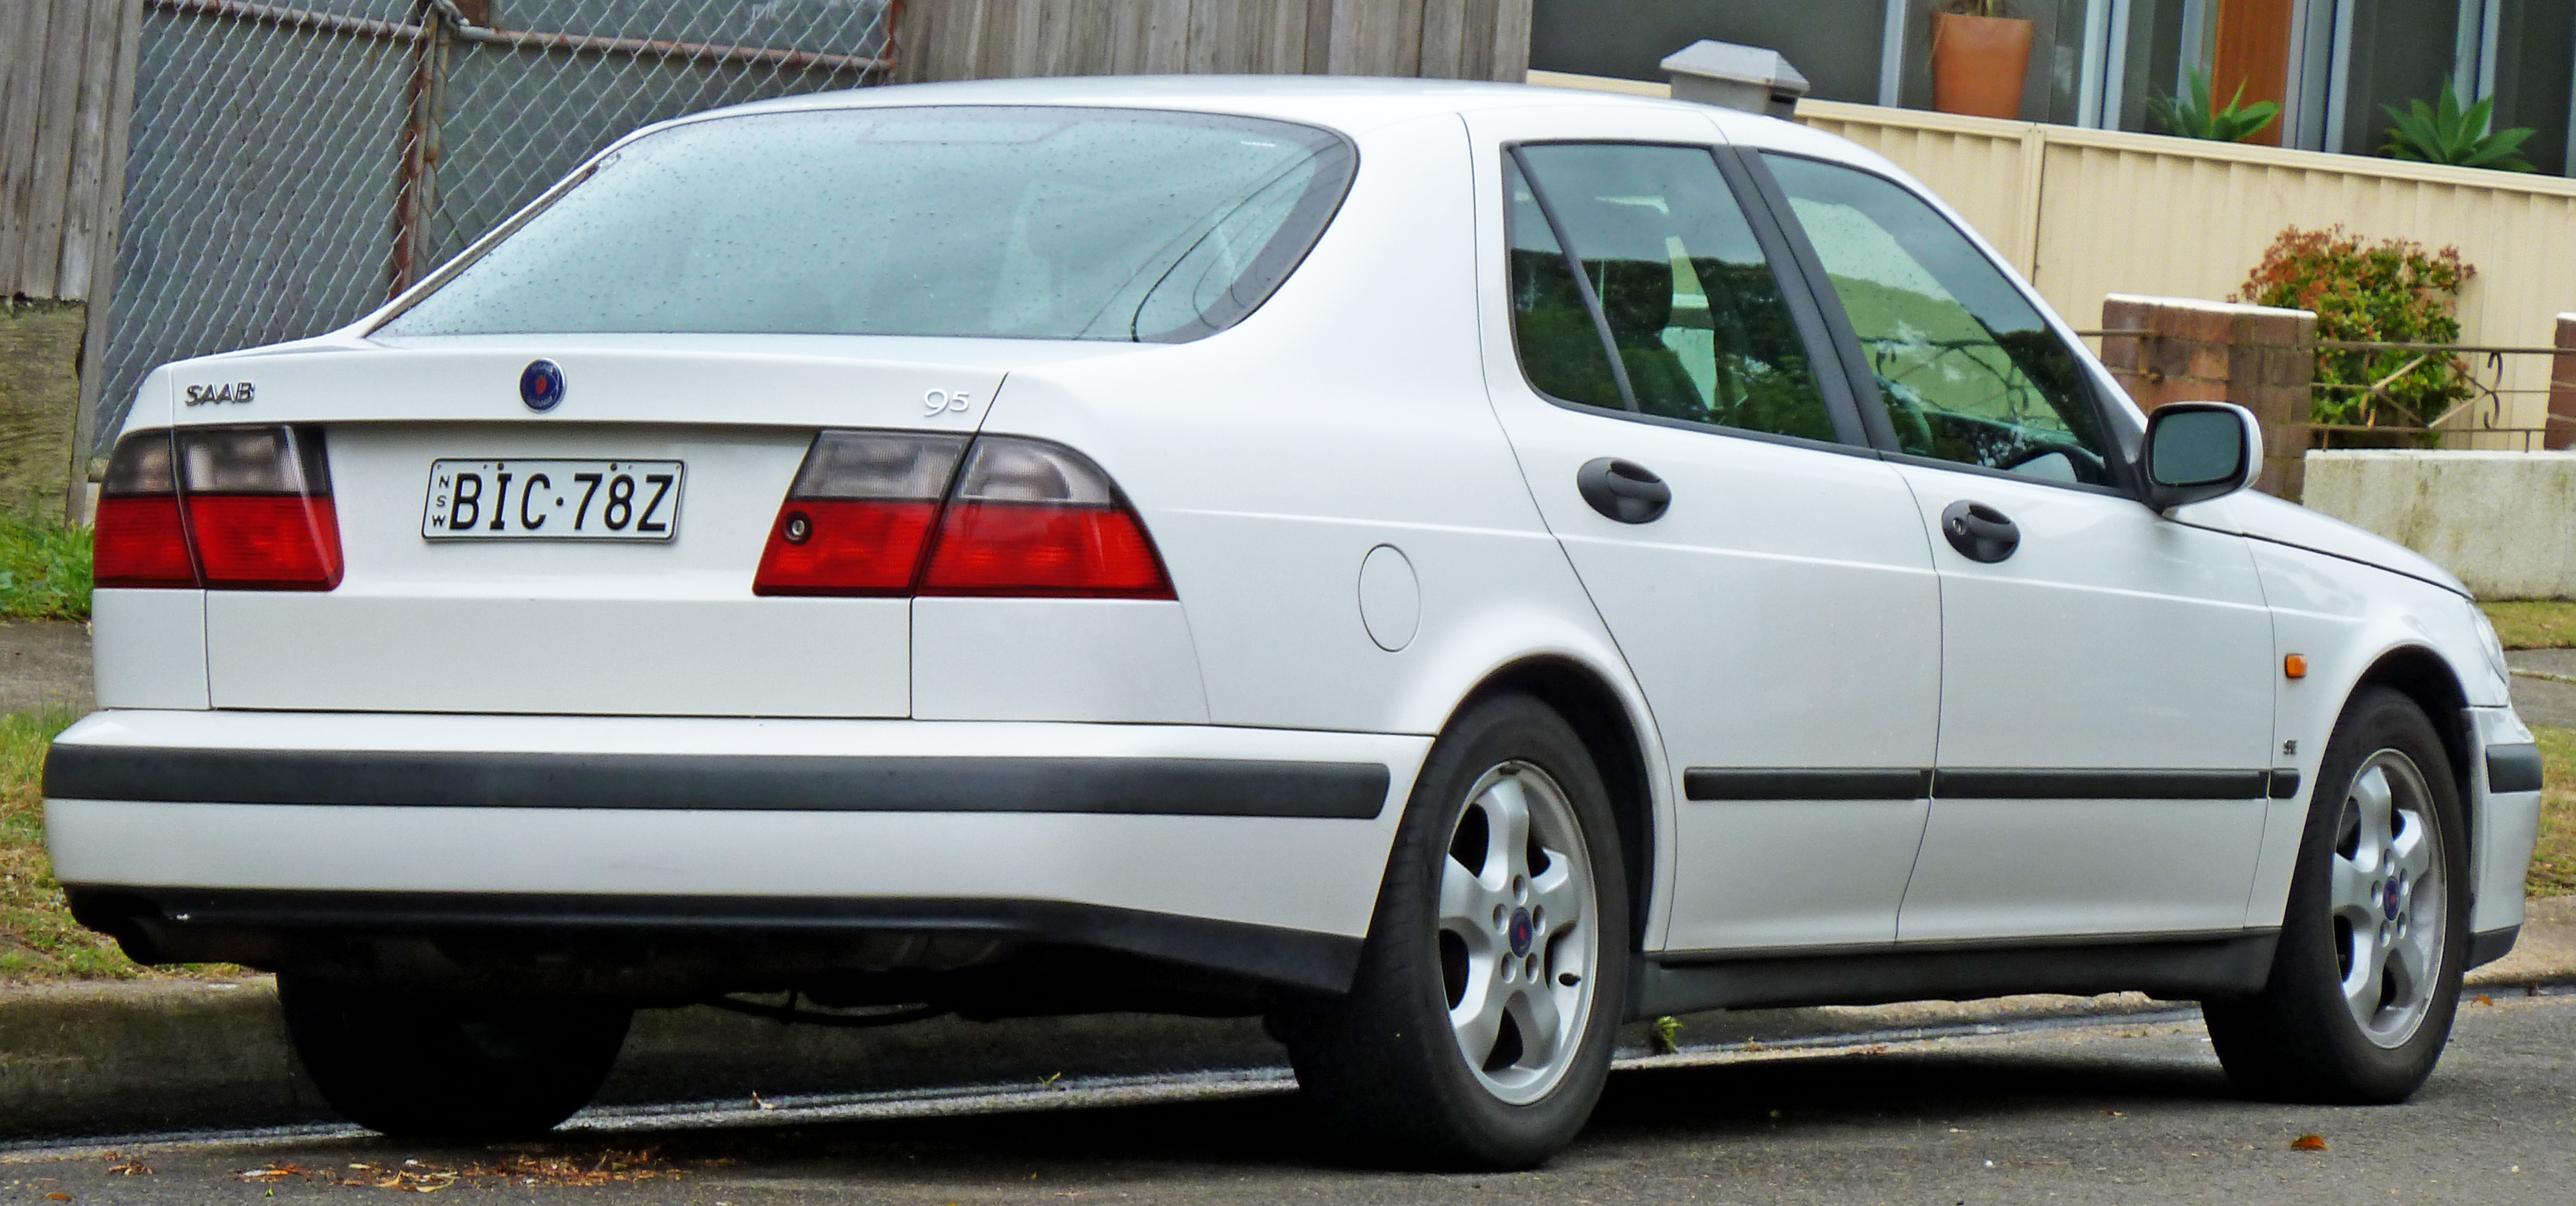 saab 9-5 1999 pictures #13